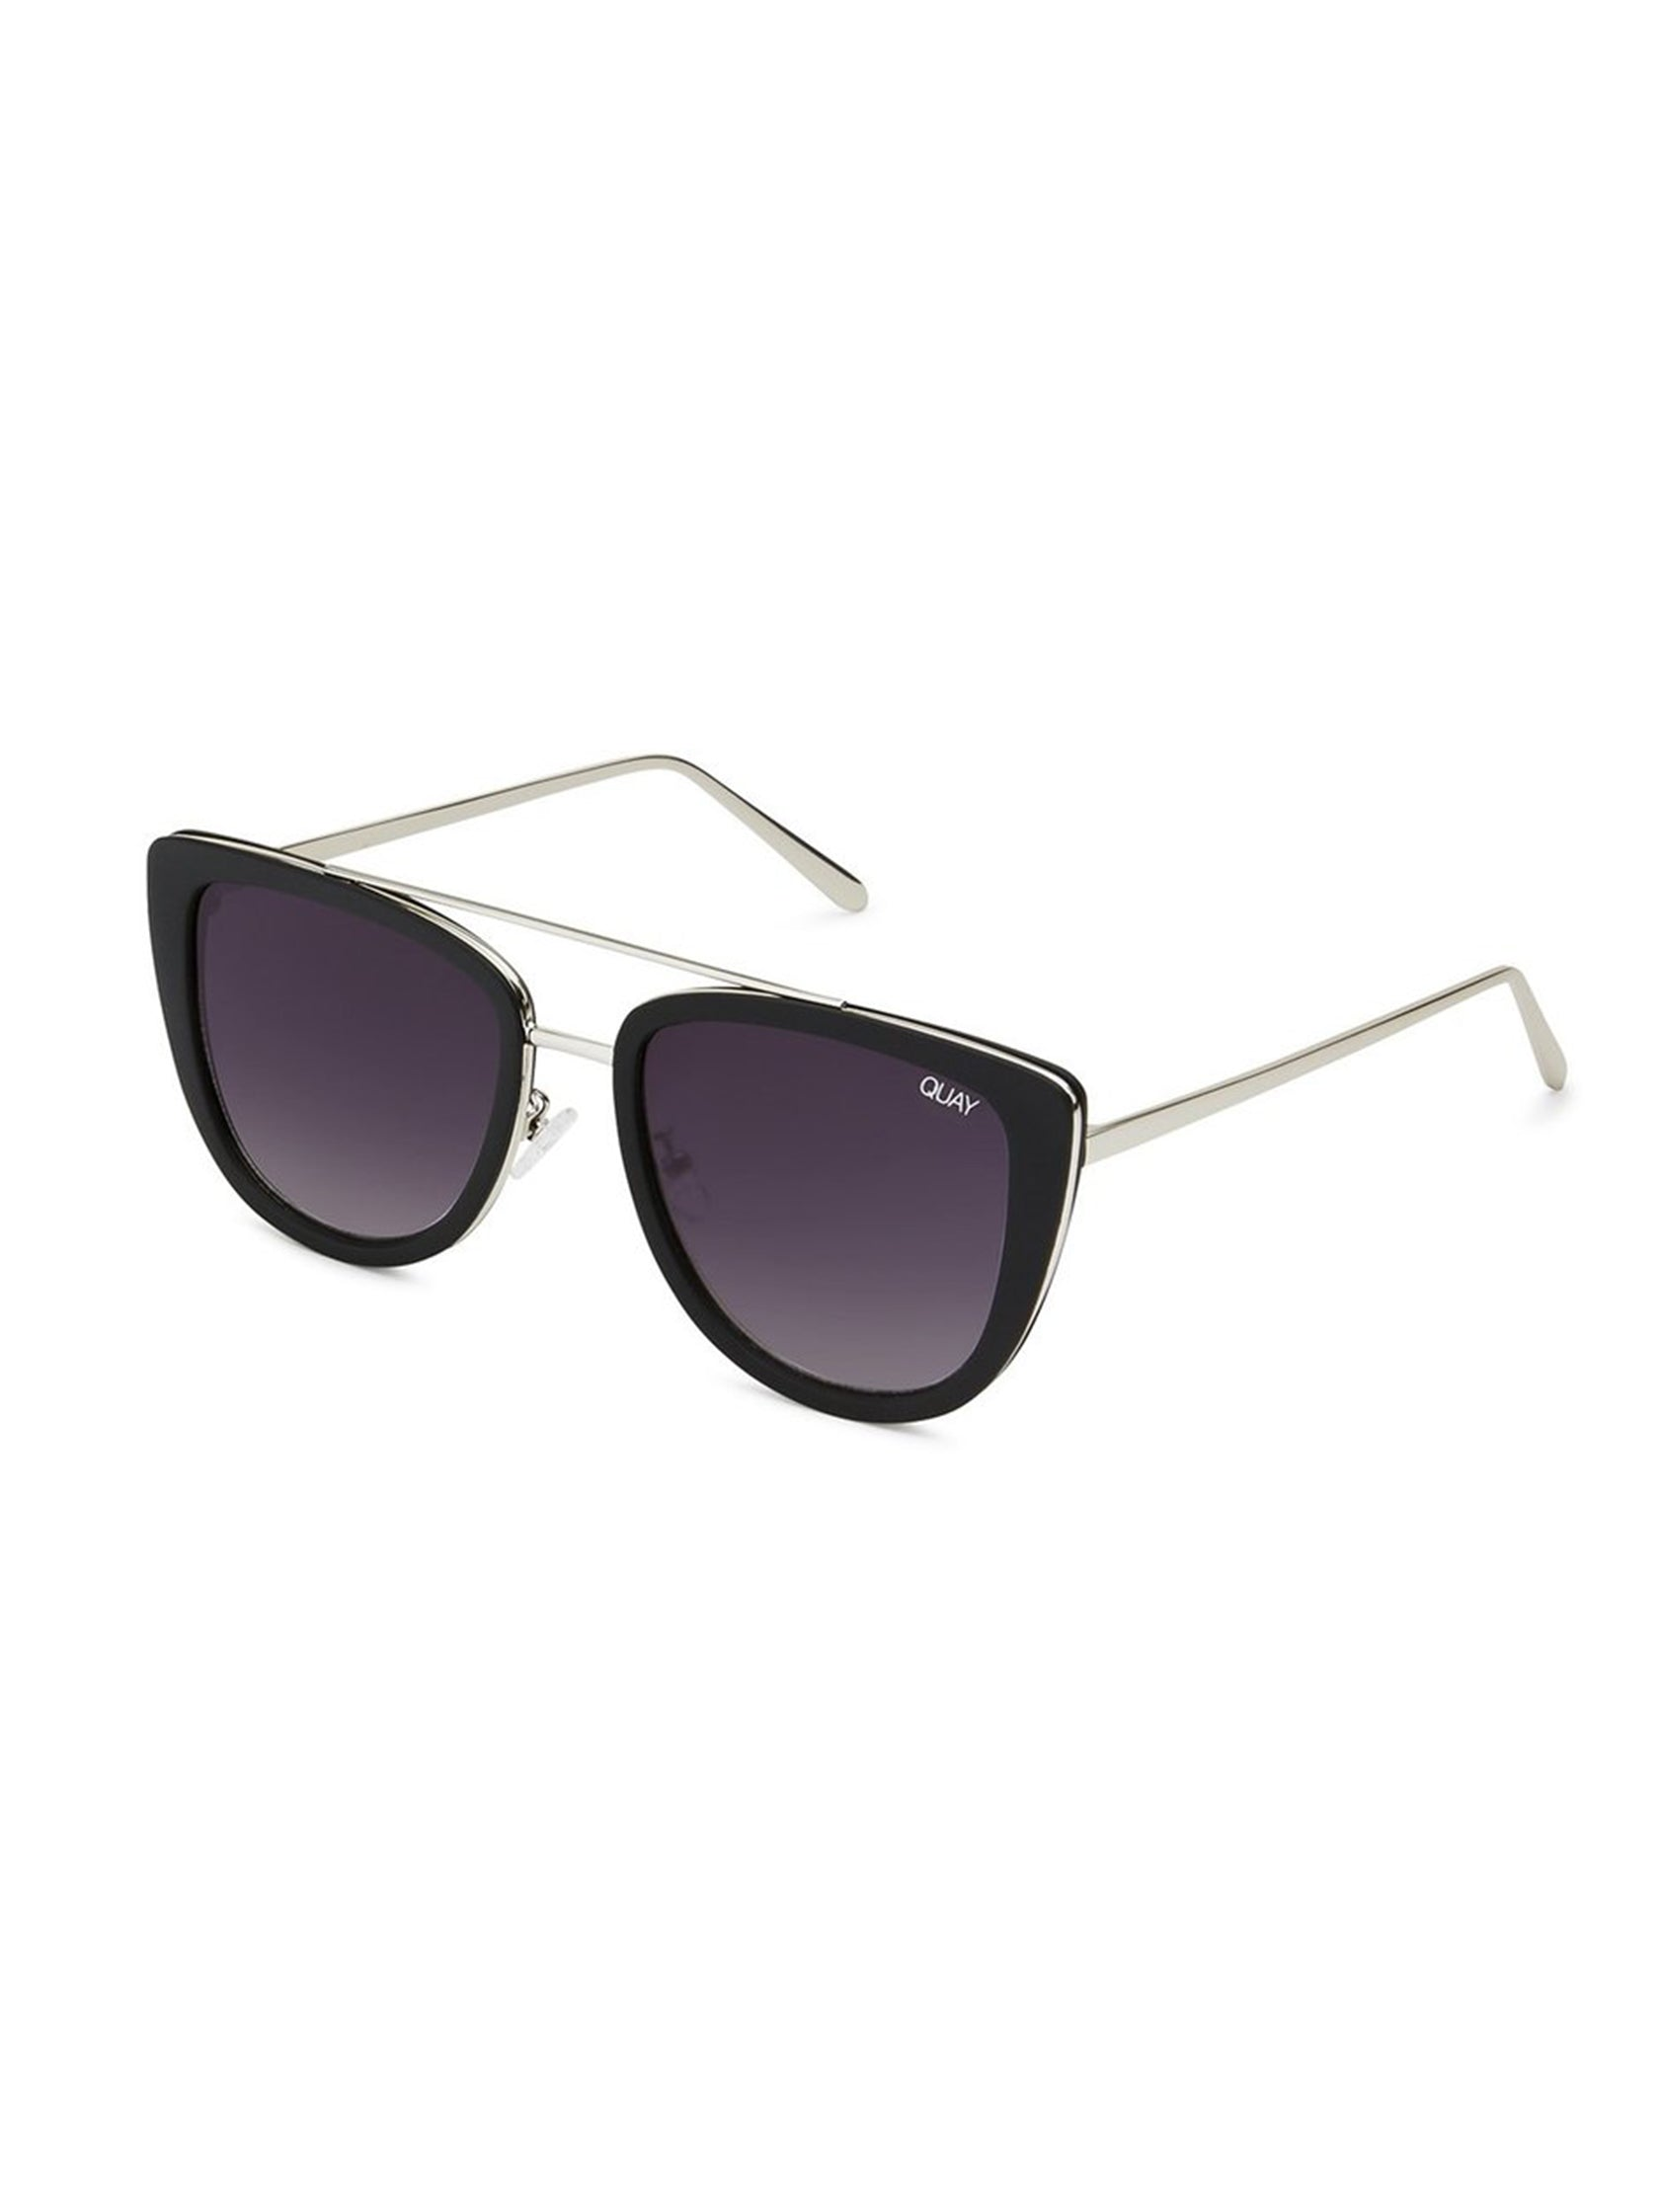 af9b9158c6 Woman wearing a sunglasses rental from Quay Australia called French Kiss  55mm Cat Eye Sunglasses